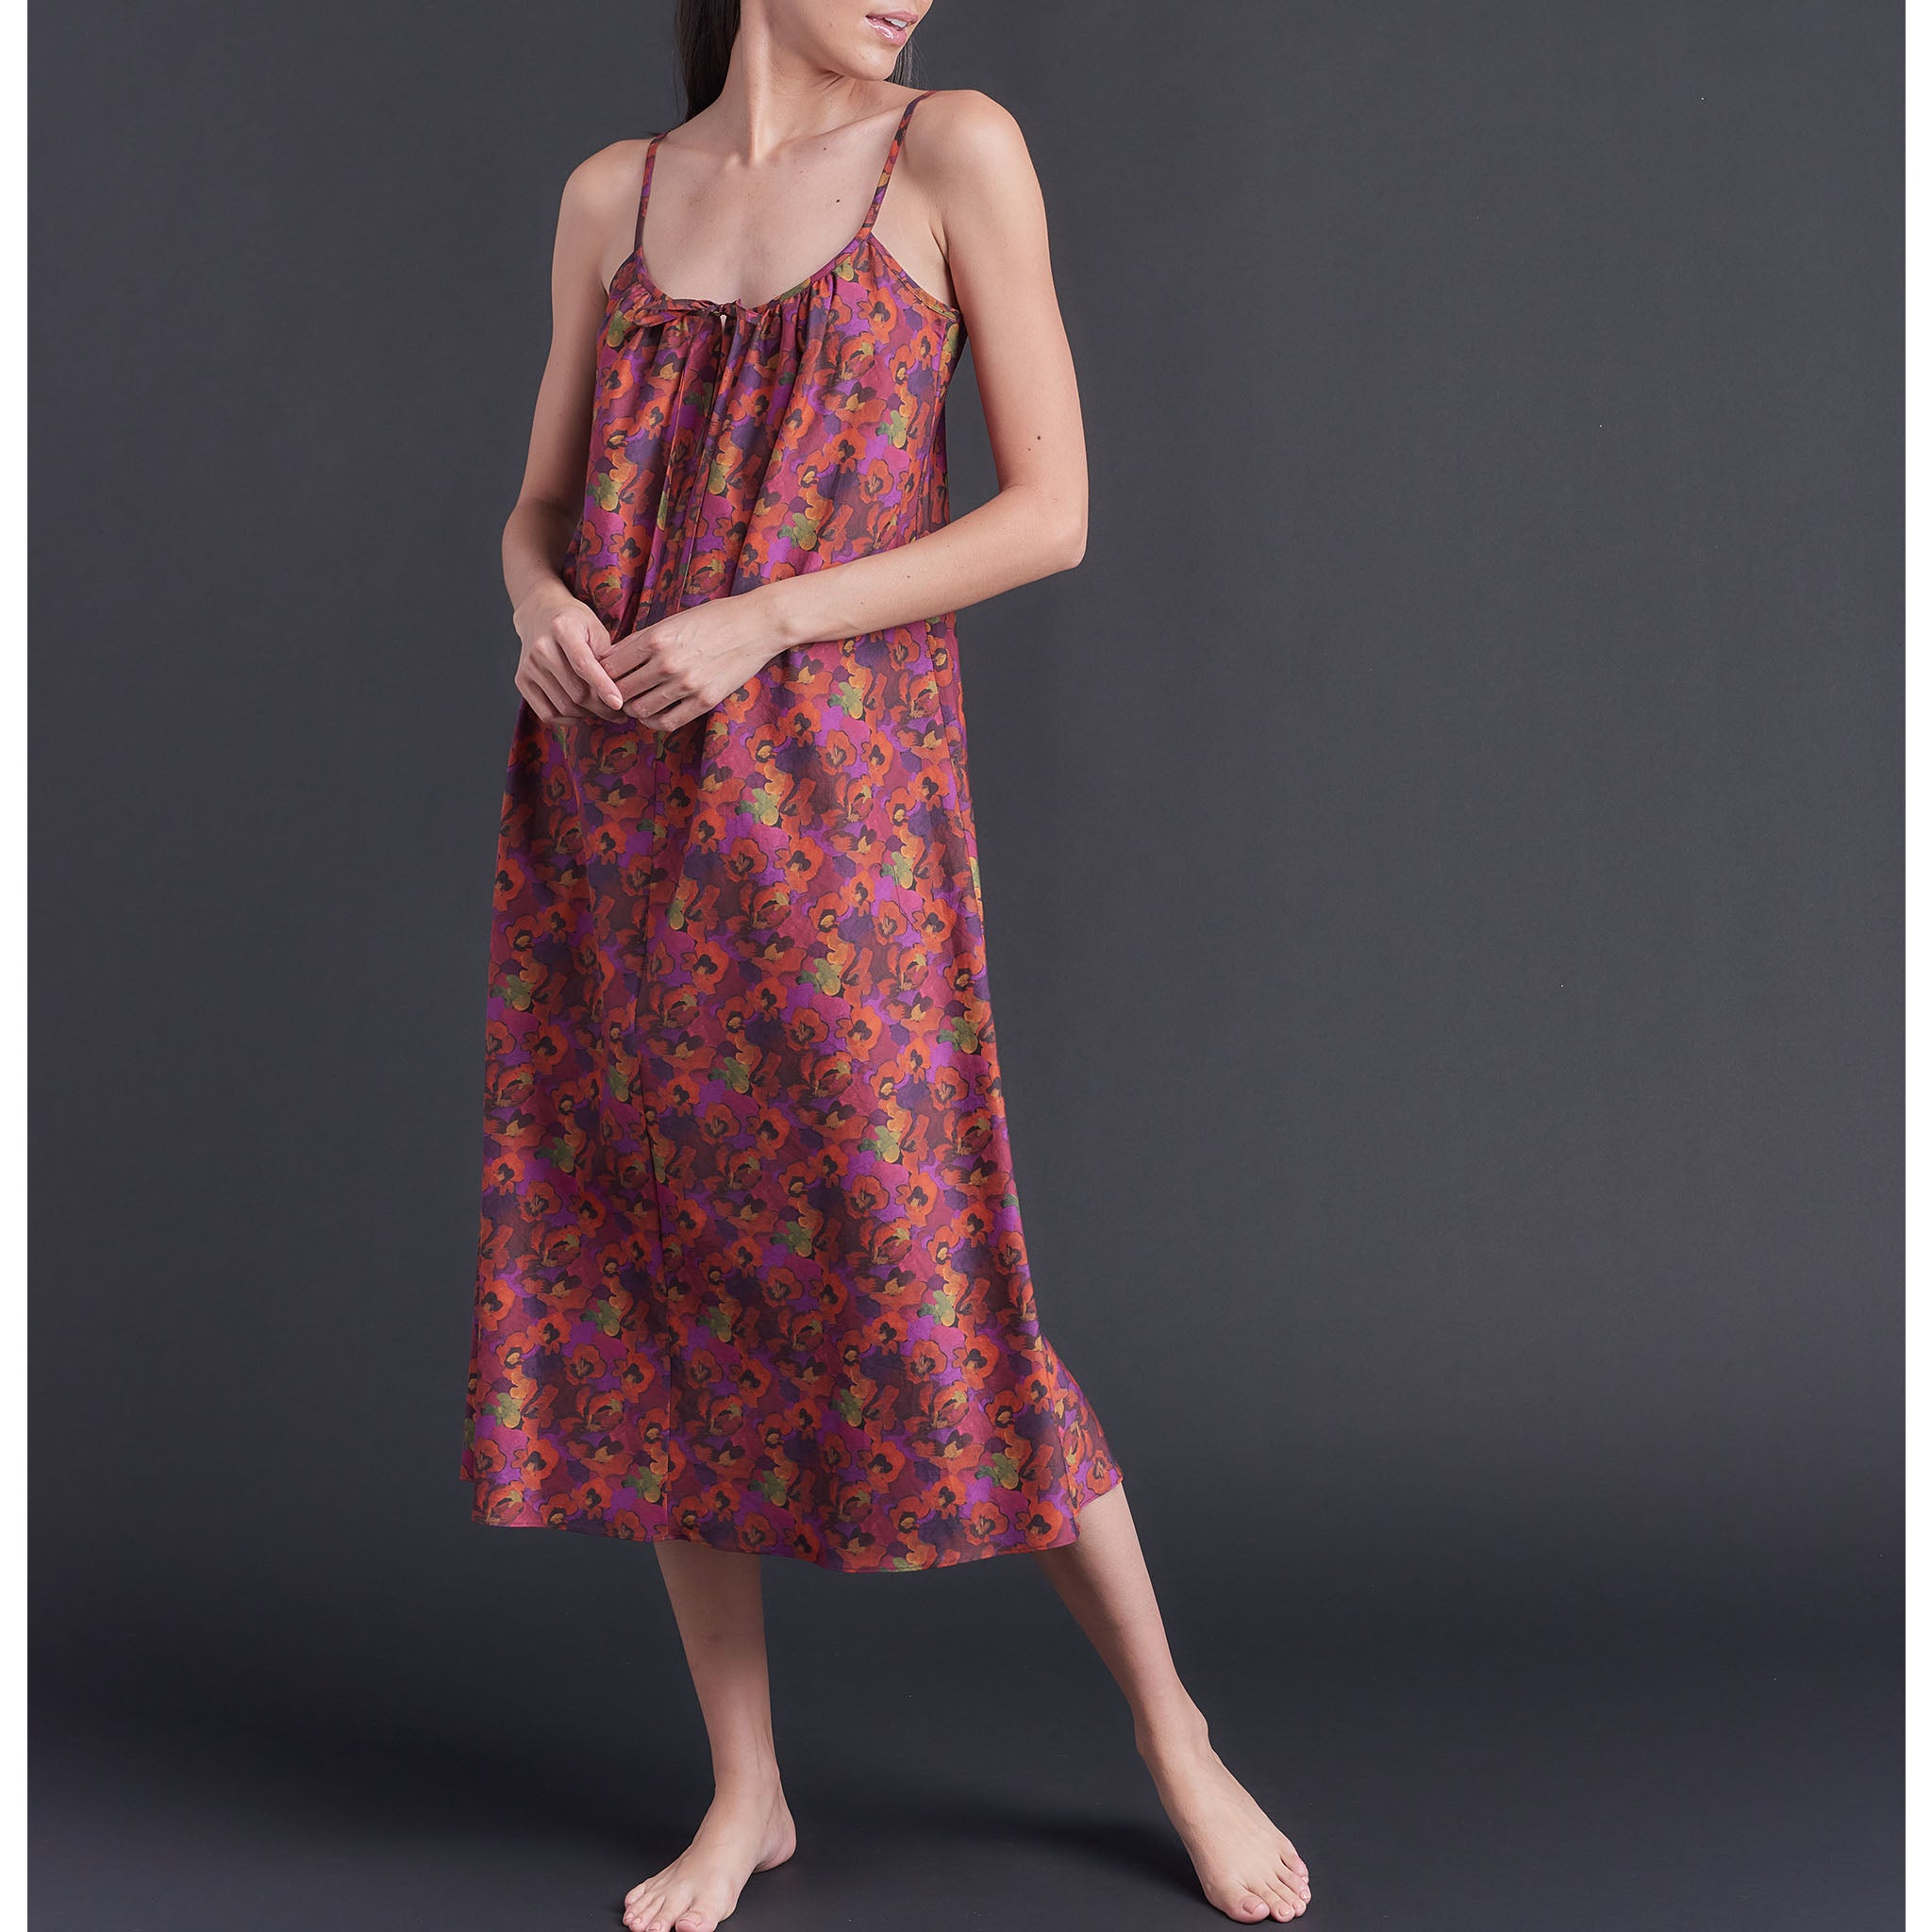 Thea Paneled Slip Dress in Gemma Rose Liberty Print Bias Cotton Lawn